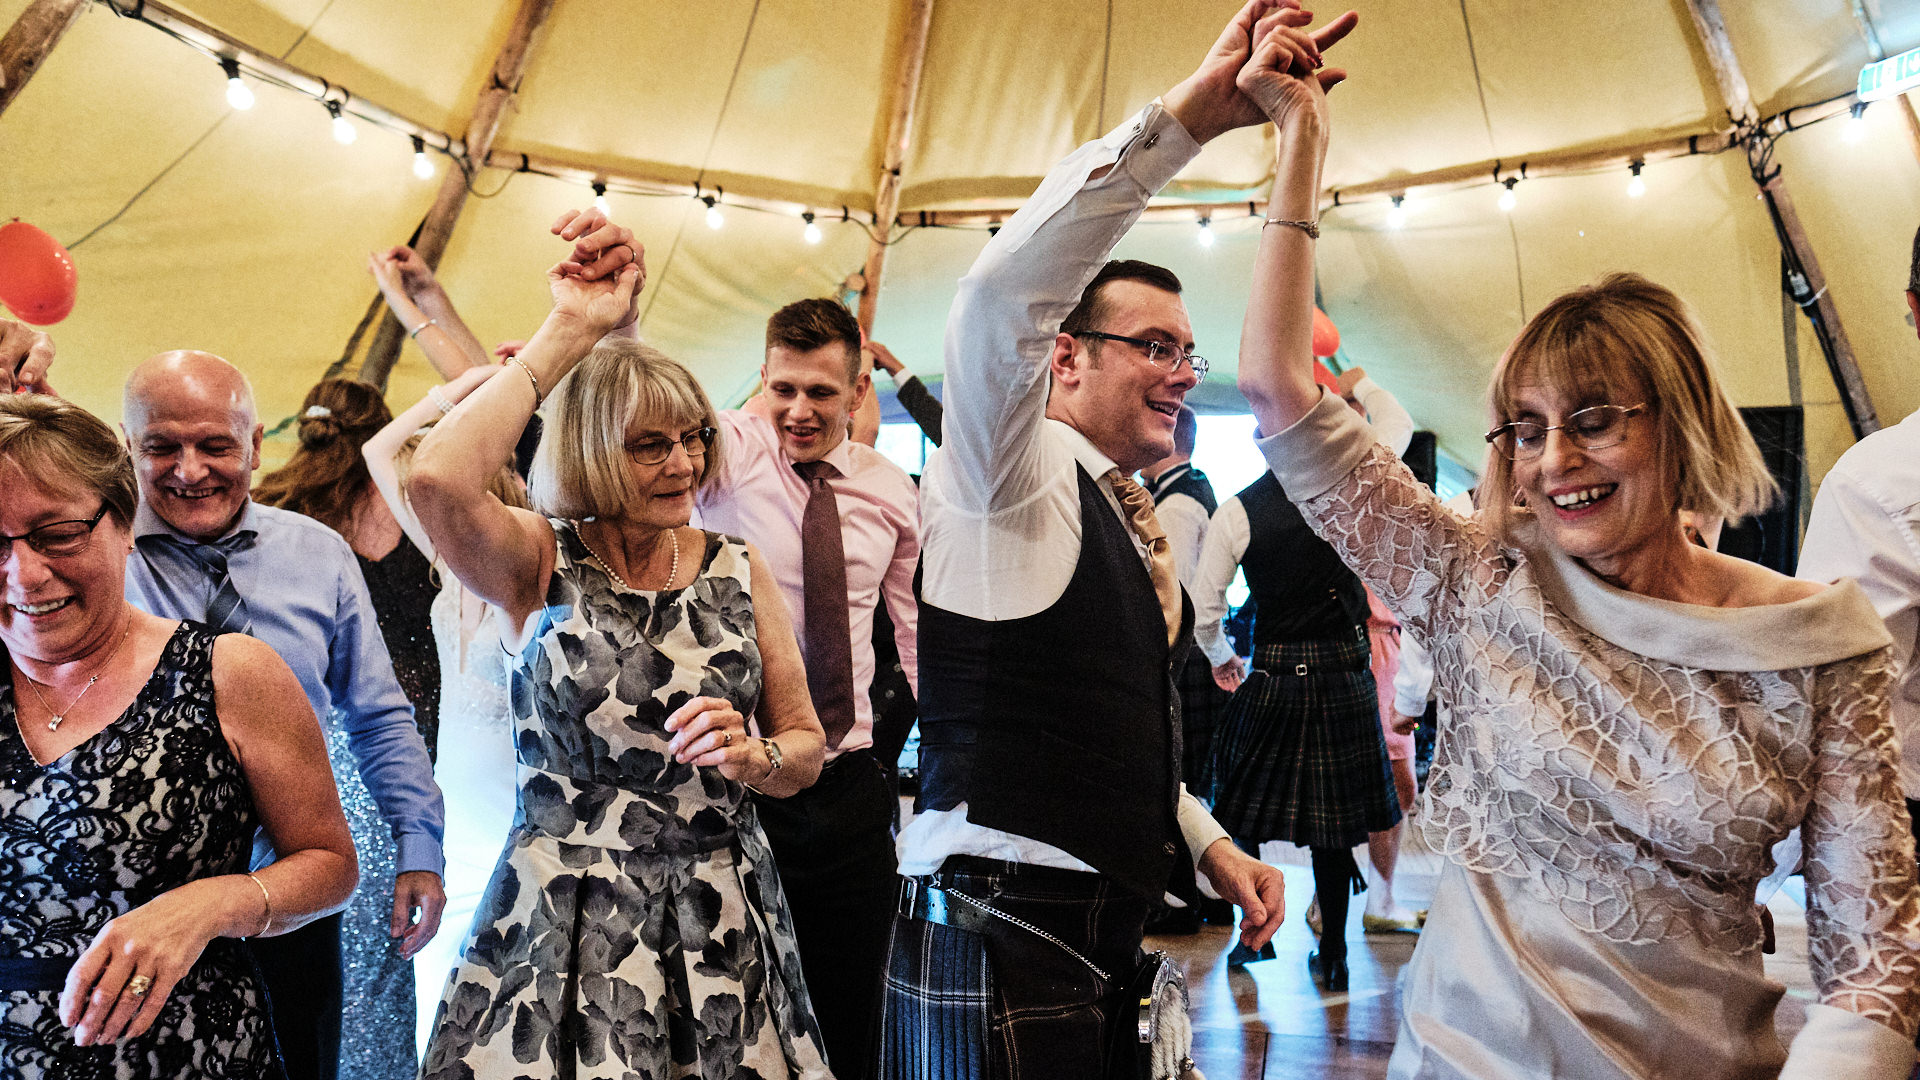 colour photograph of wedding guests dancing during a ceilidh at a wedding